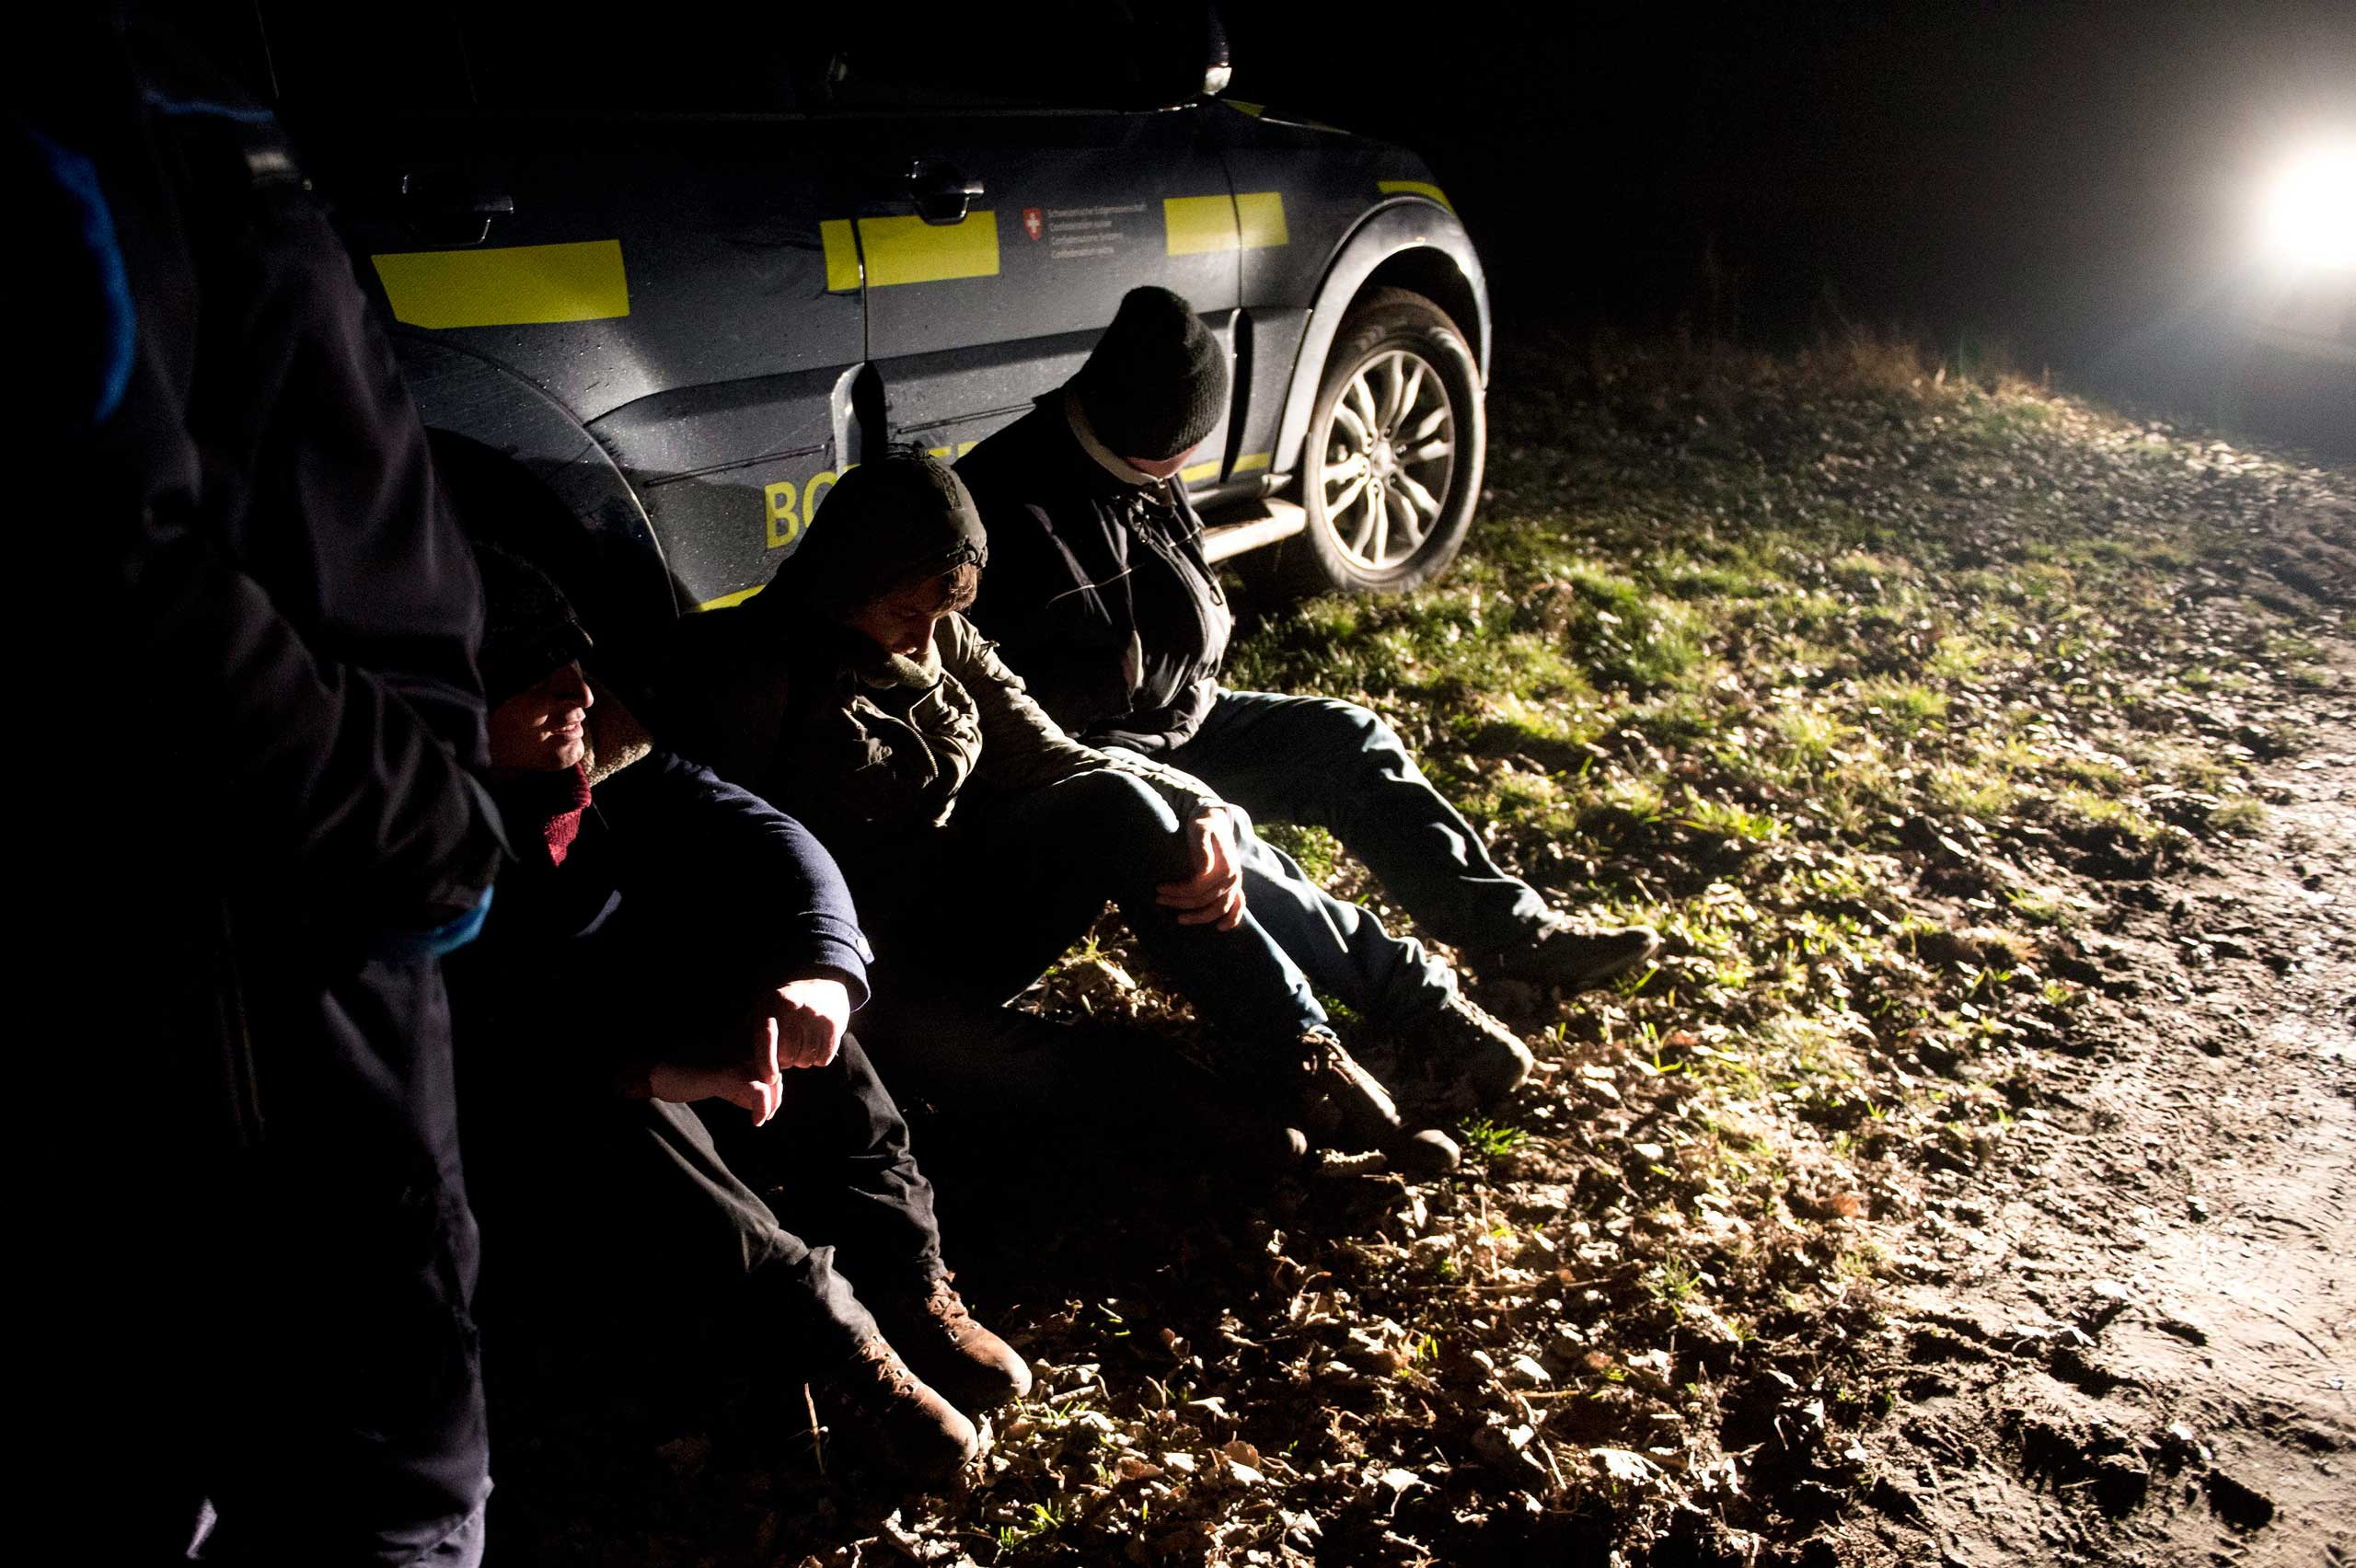 Migrants are detained by a Hungarian civil guard after being caught on the Hungarian-Serbian border near Roszke, south of Szeged, 100 miles south of Budapest, Hungary on Jan. 19, 2015.